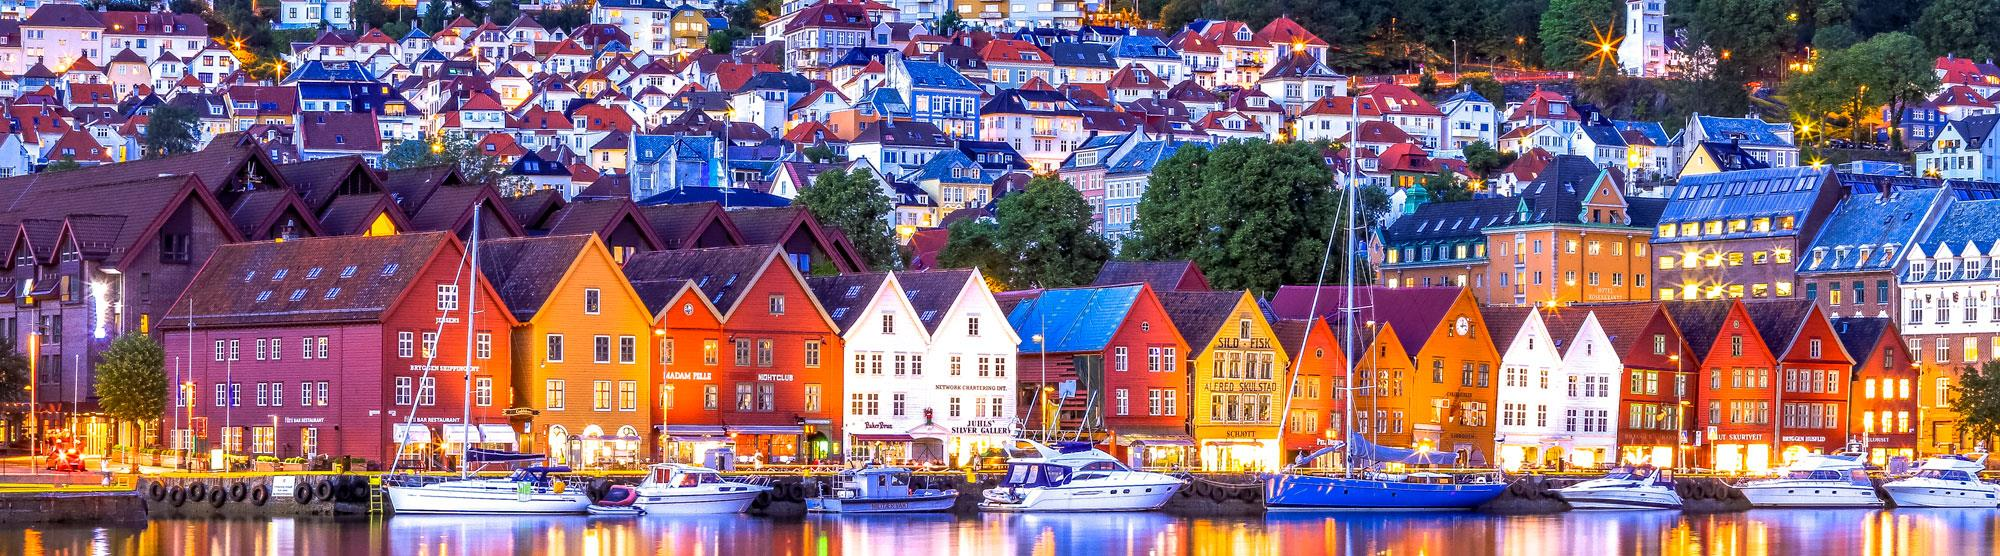 World Heritage City Bergen